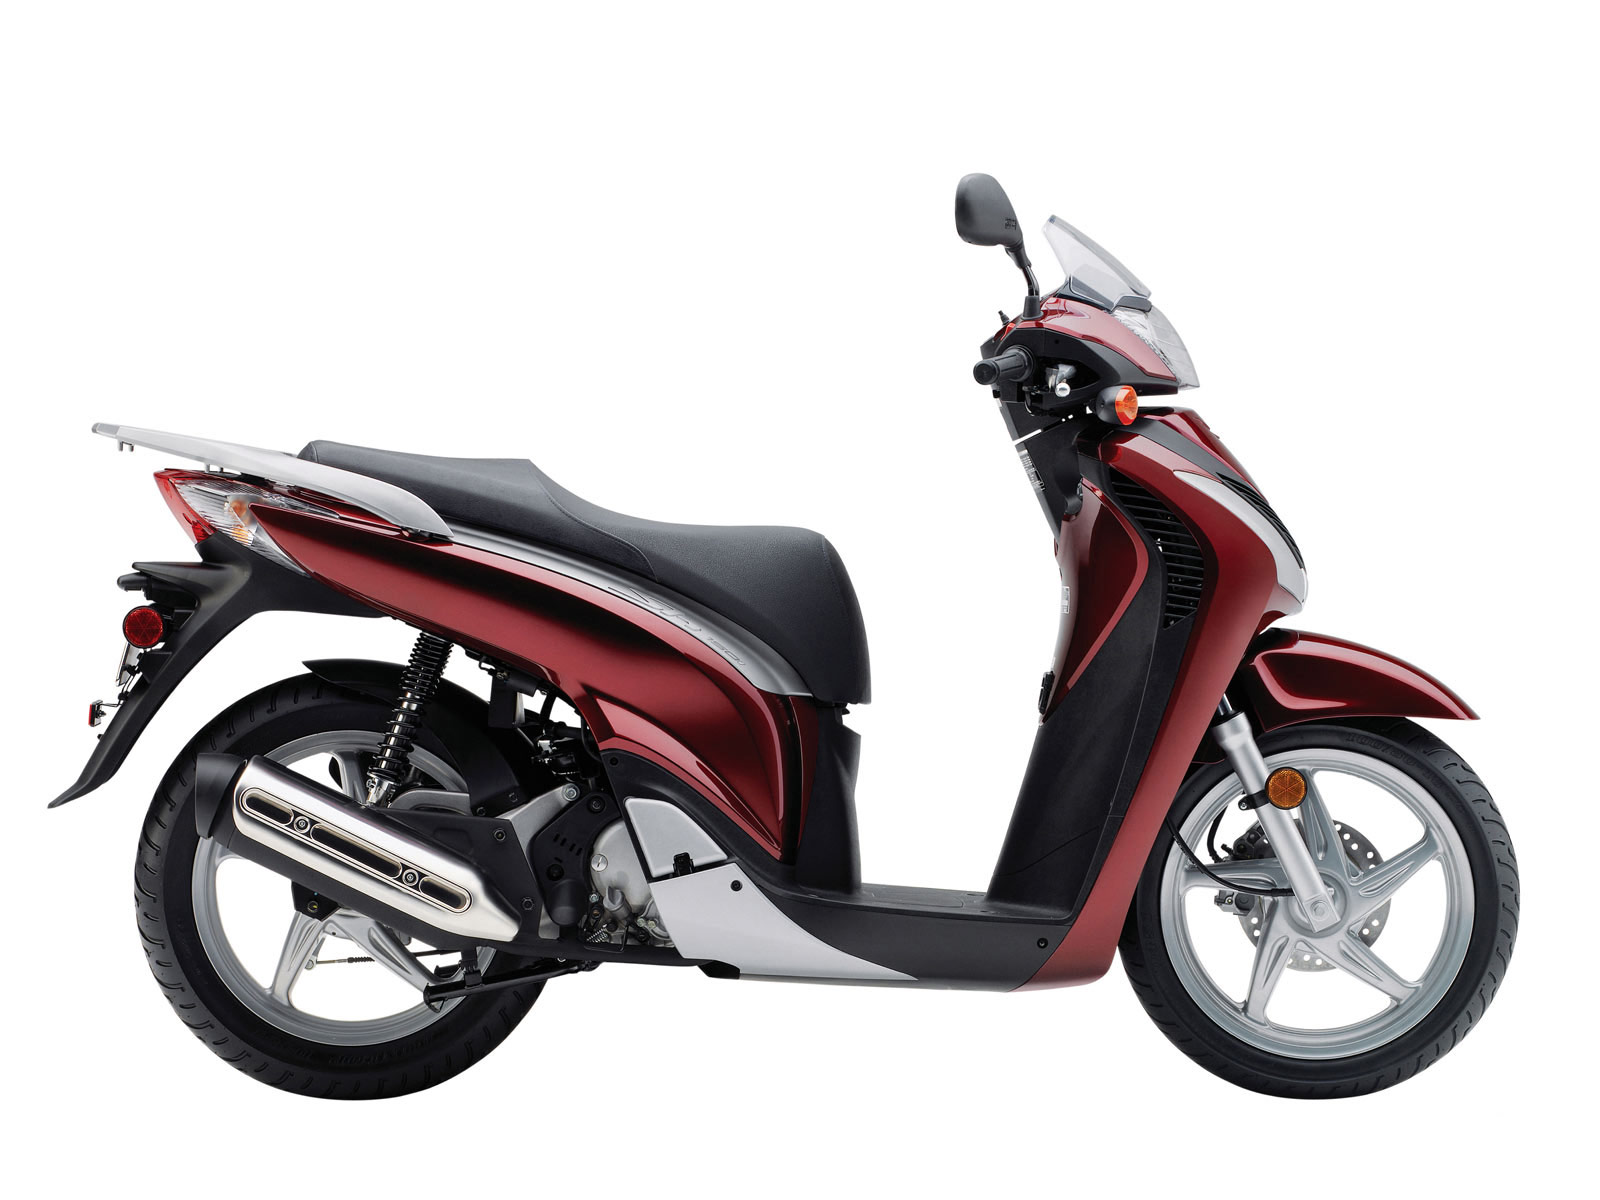 http://3.bp.blogspot.com/-edt-BwLGOII/ToUDySdXukI/AAAAAAAAEiY/YeRl8gV1kAM/s1600/Honda_SH150i_2010_scooter-pictures_01.jpg